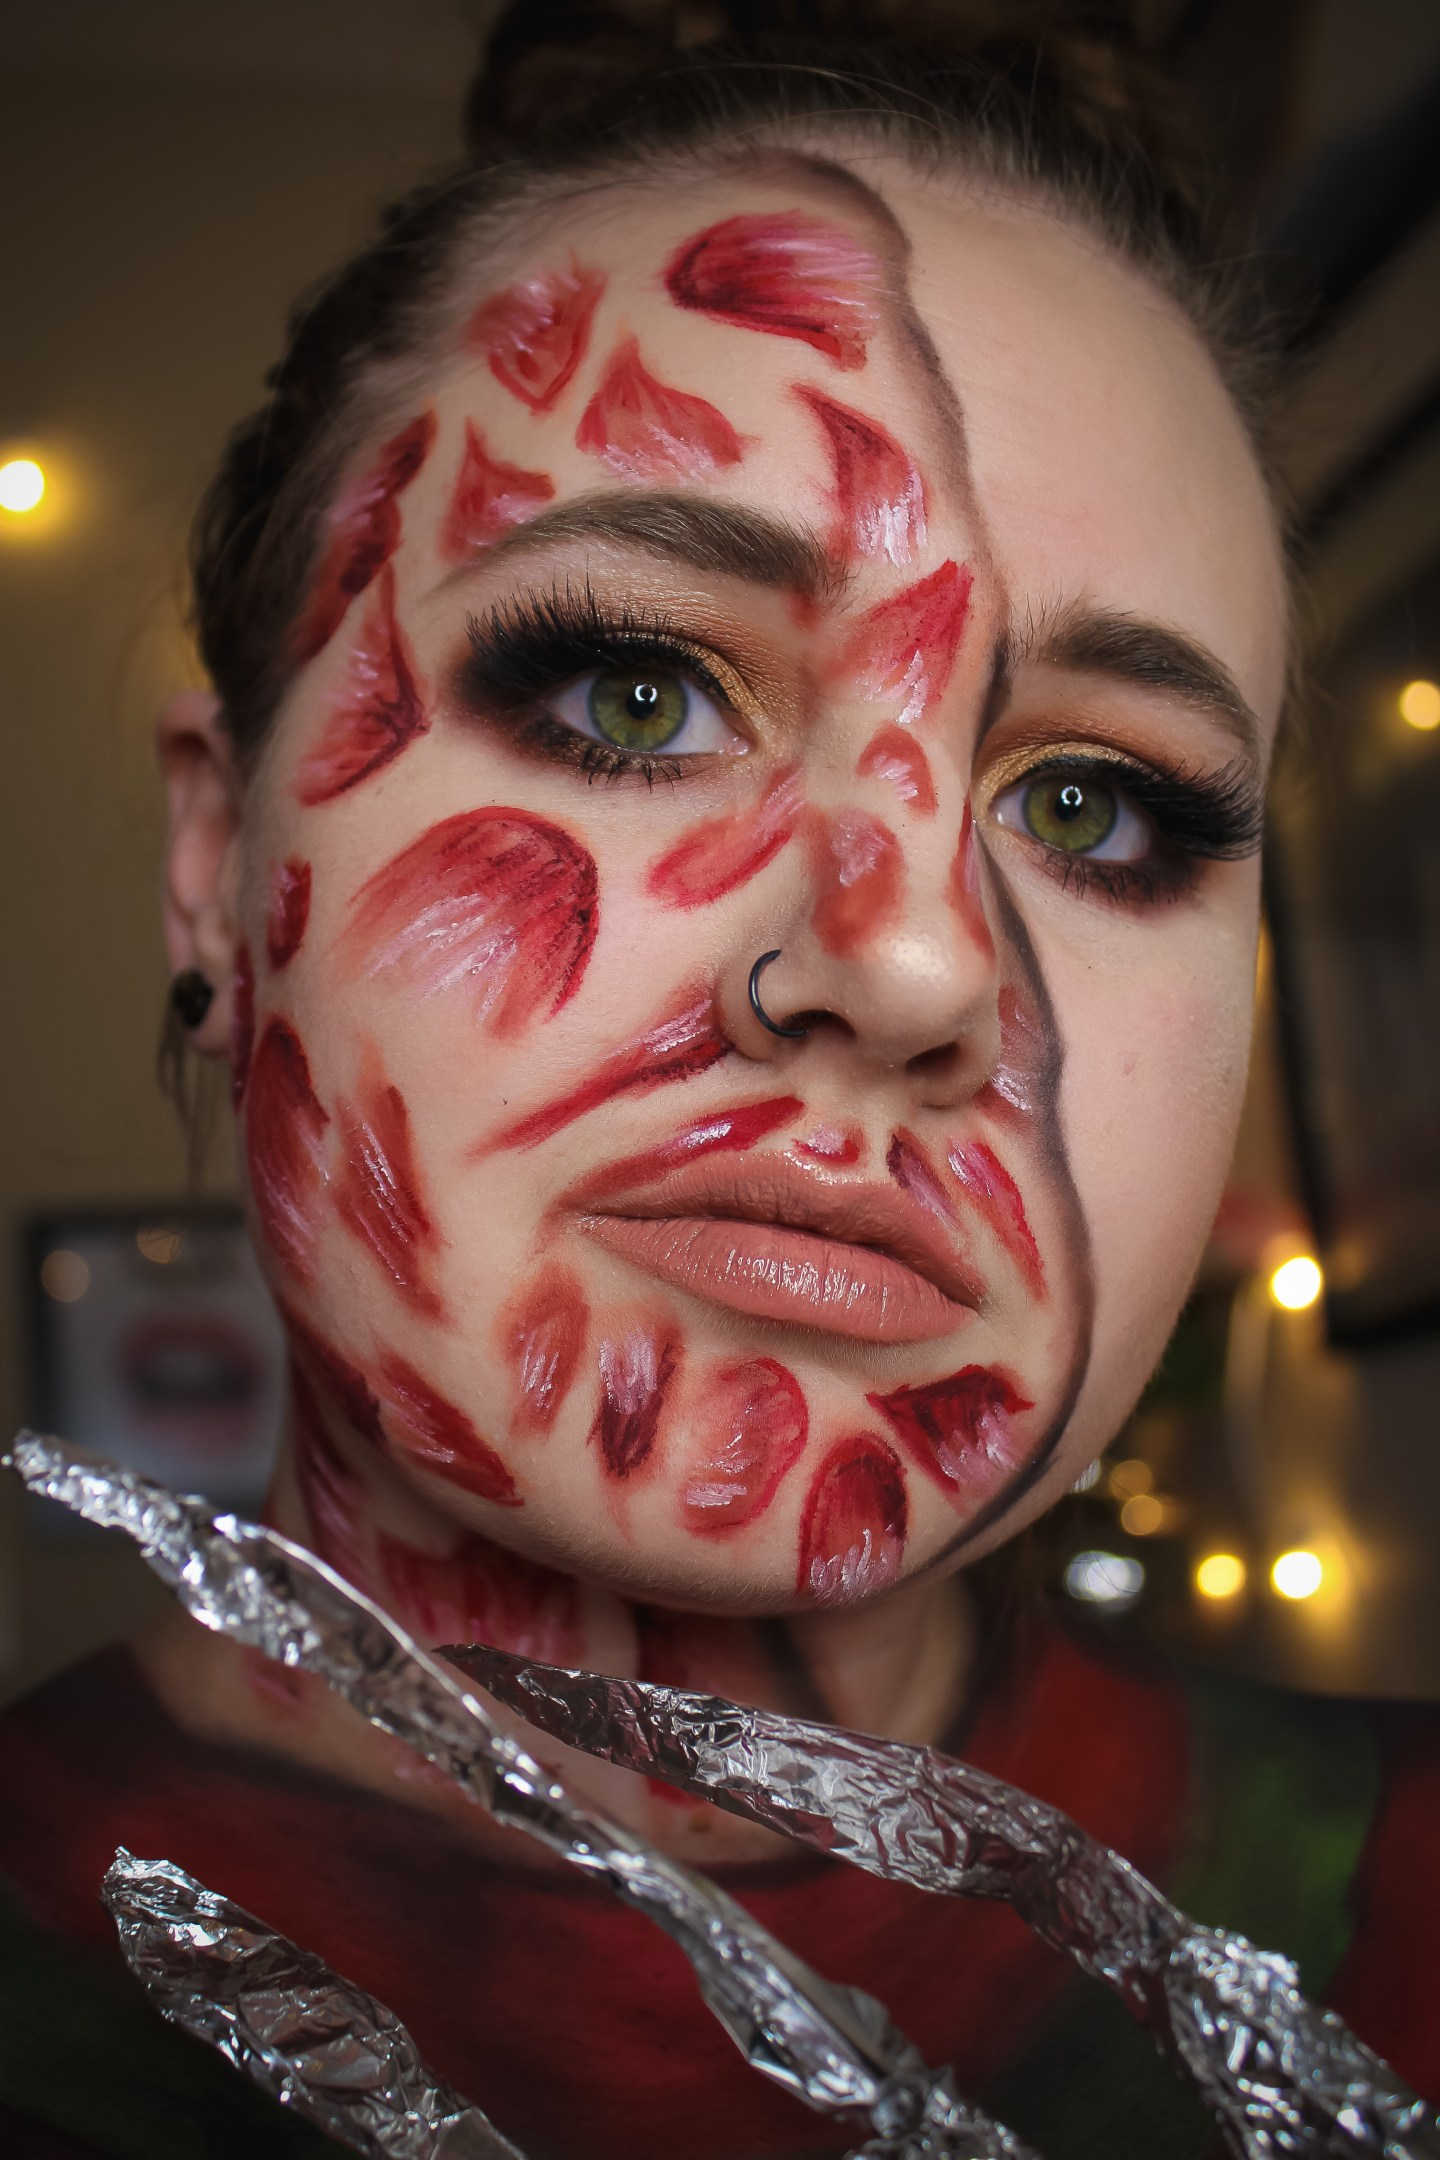 Why are you Screamin'? Freddy Krueger from A Nightmare on Elm Street Makeup Look 2